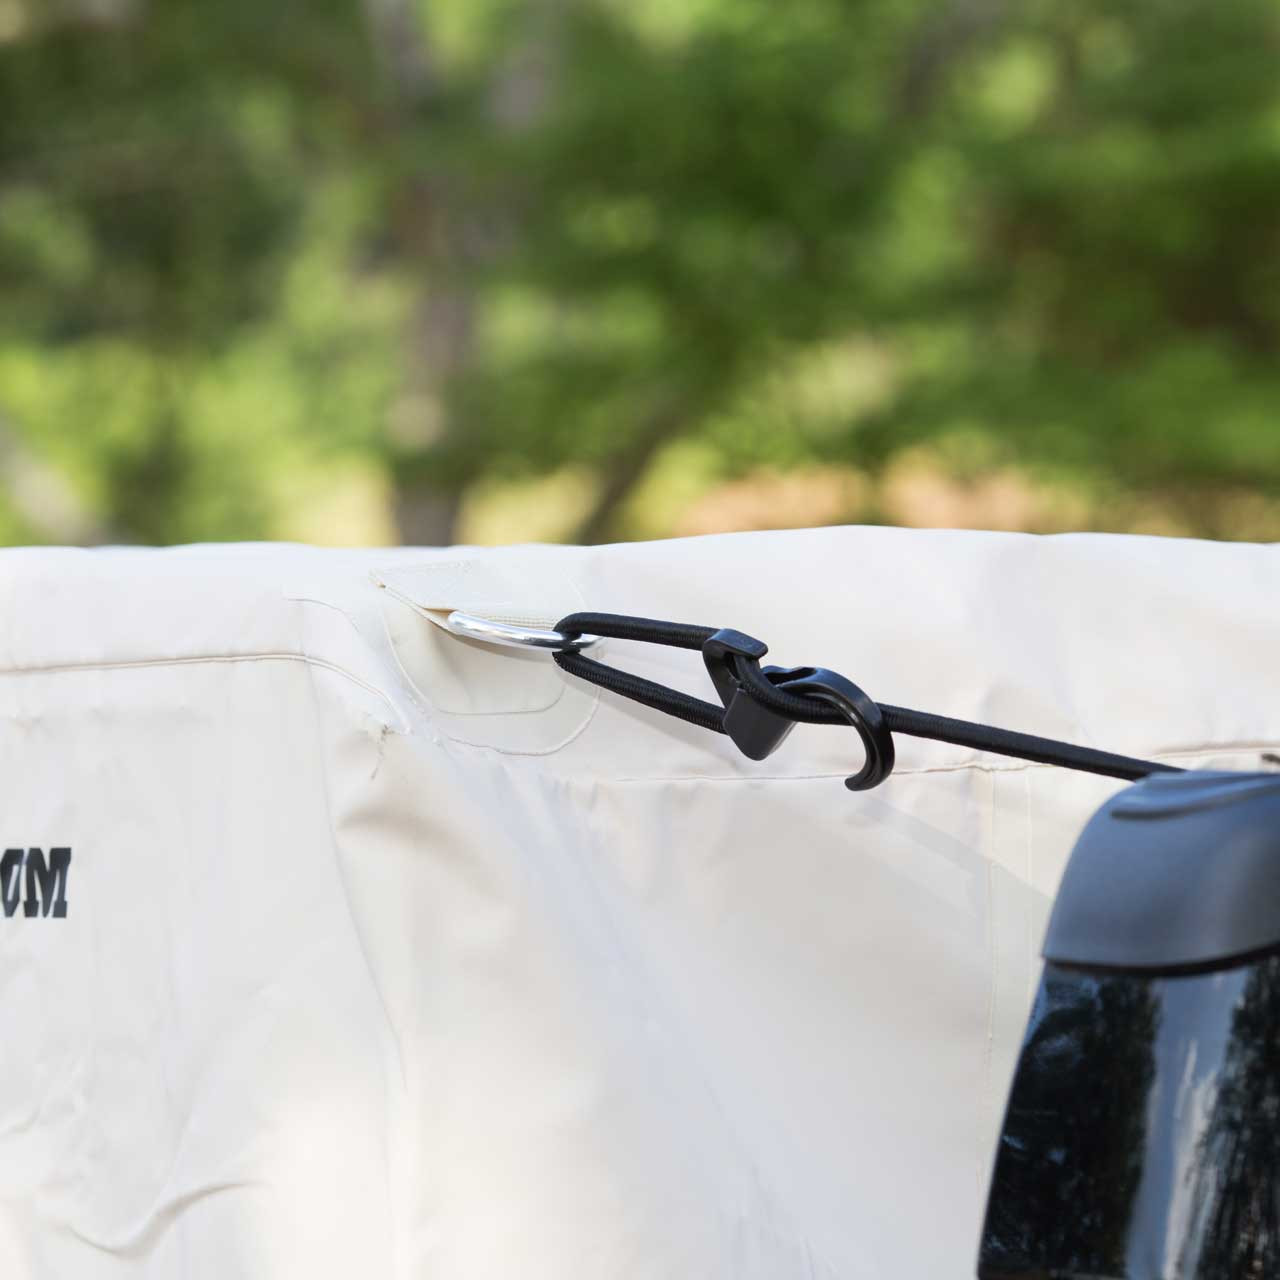 Image of the cords used to strap down and secure the waterproof khaki Tuff Truck Bag to the pickup truck bed